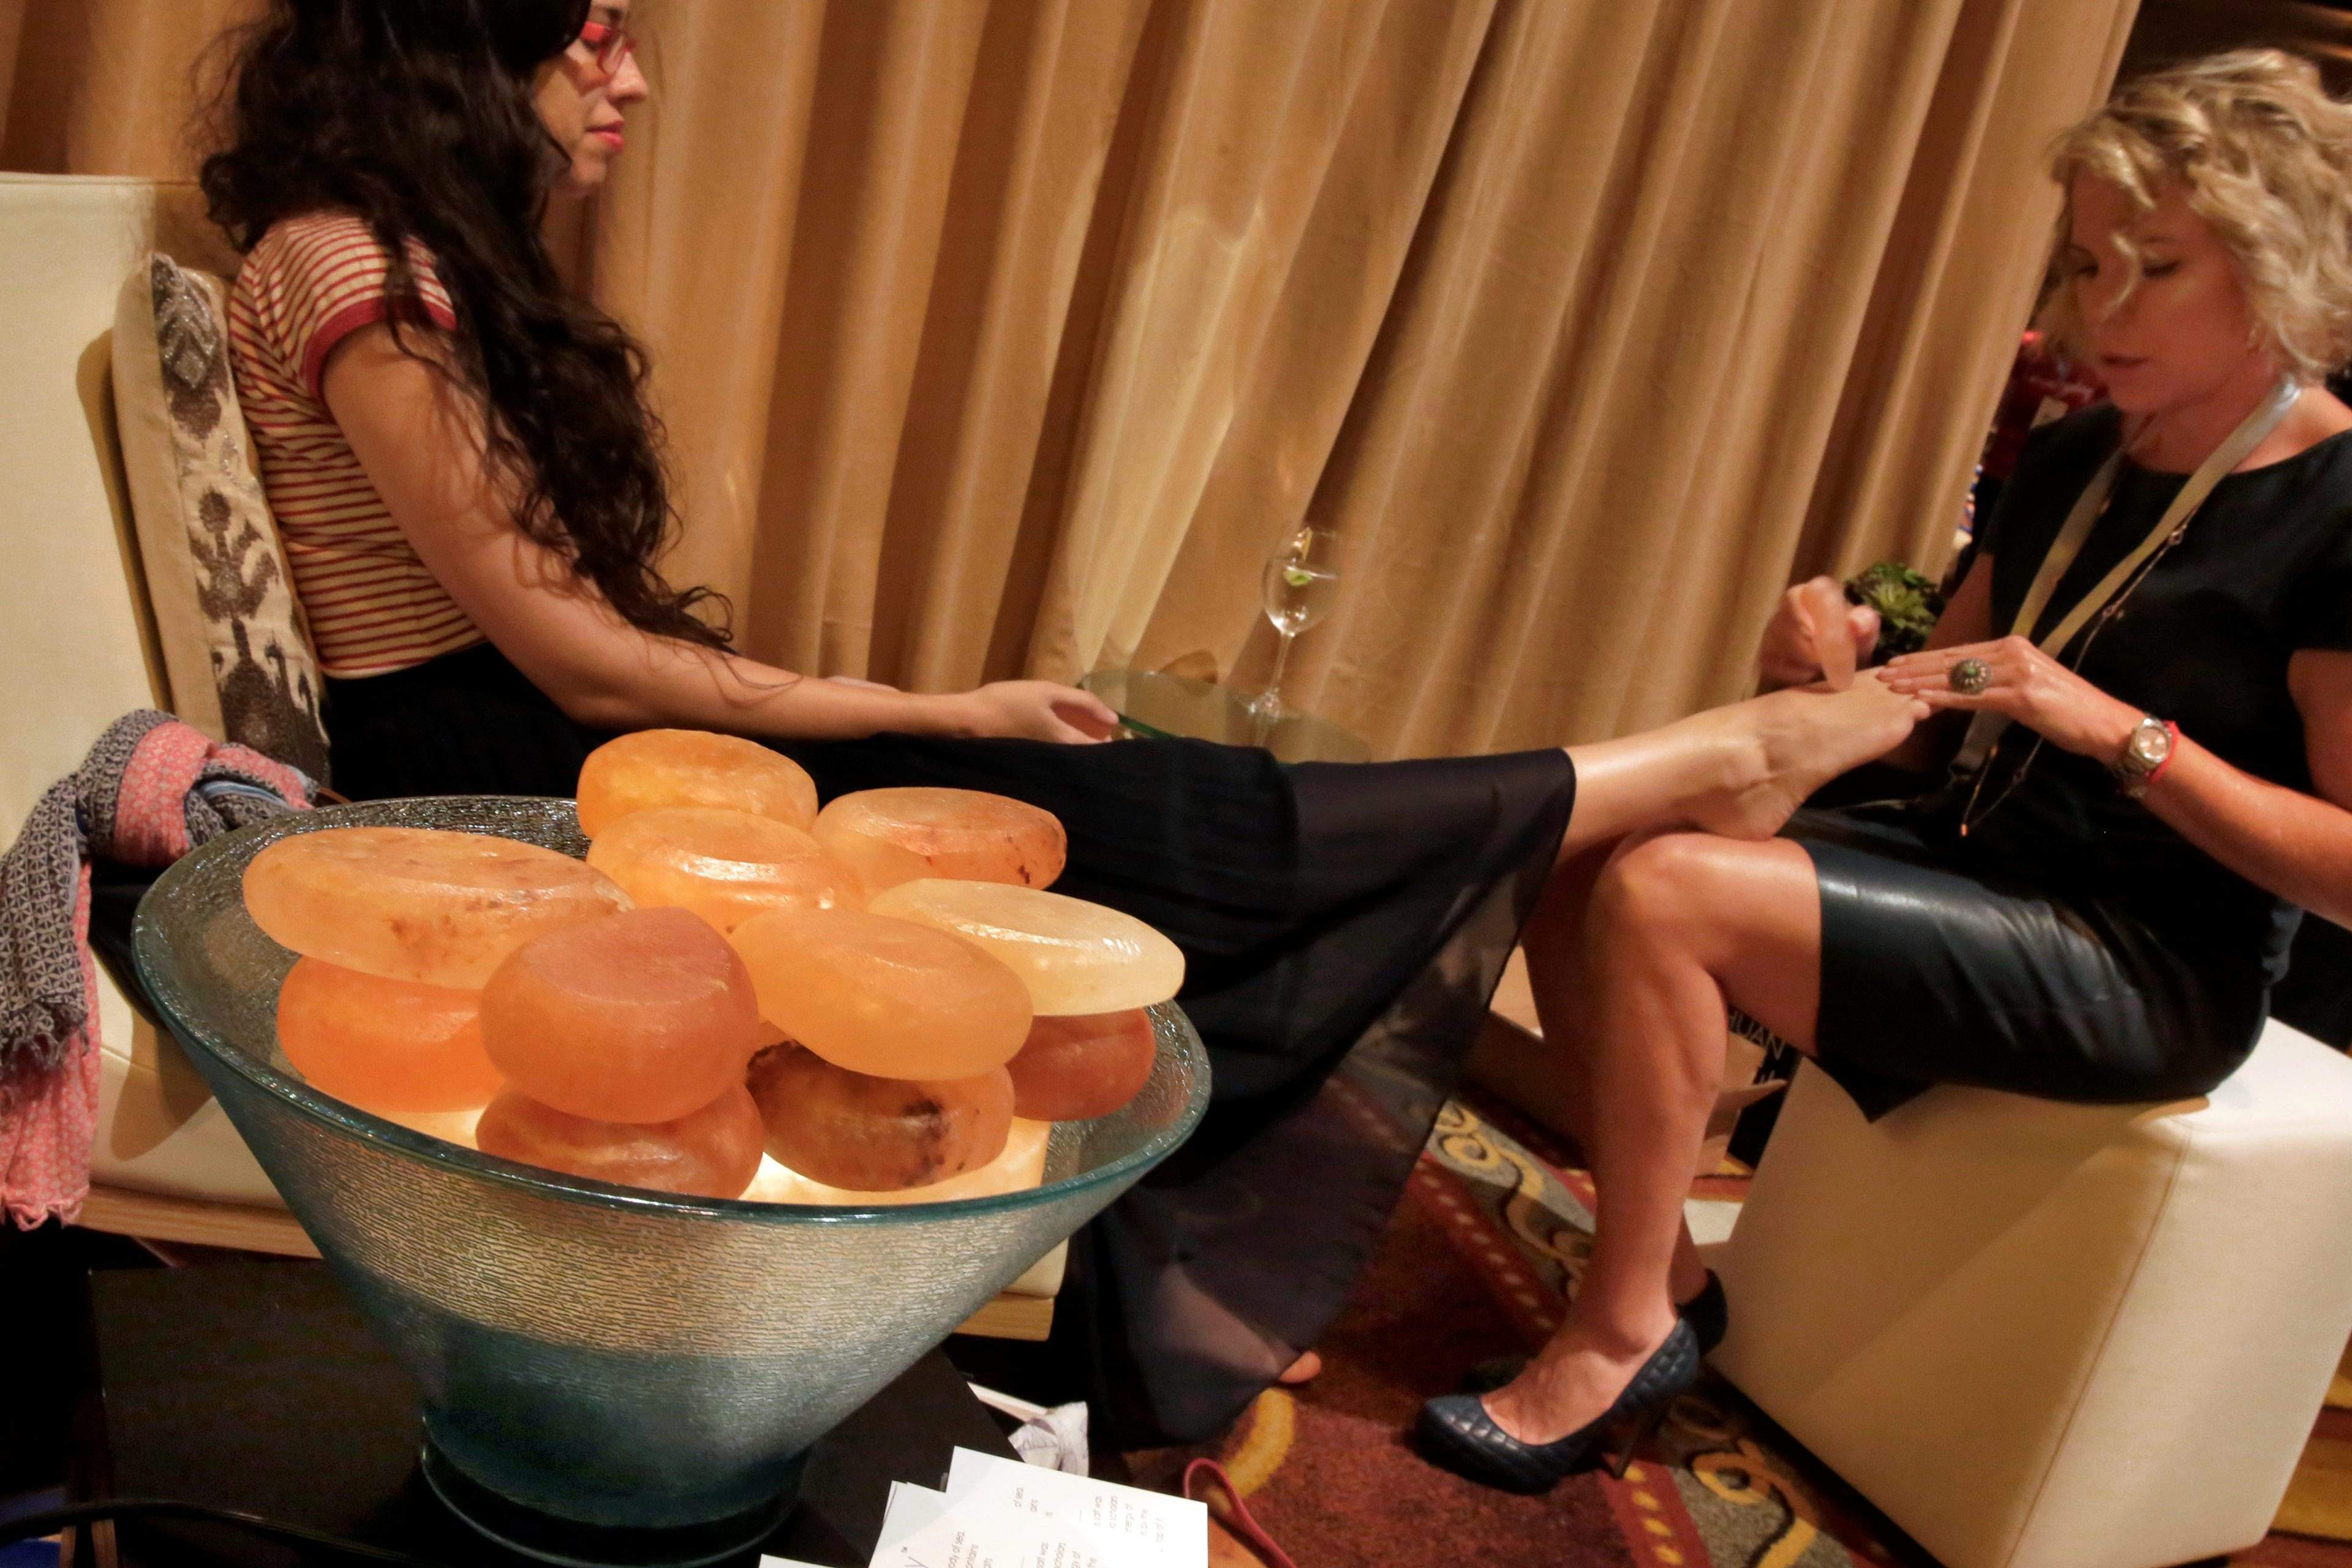 not just fluff and buff spas emphasize wellness over beauty